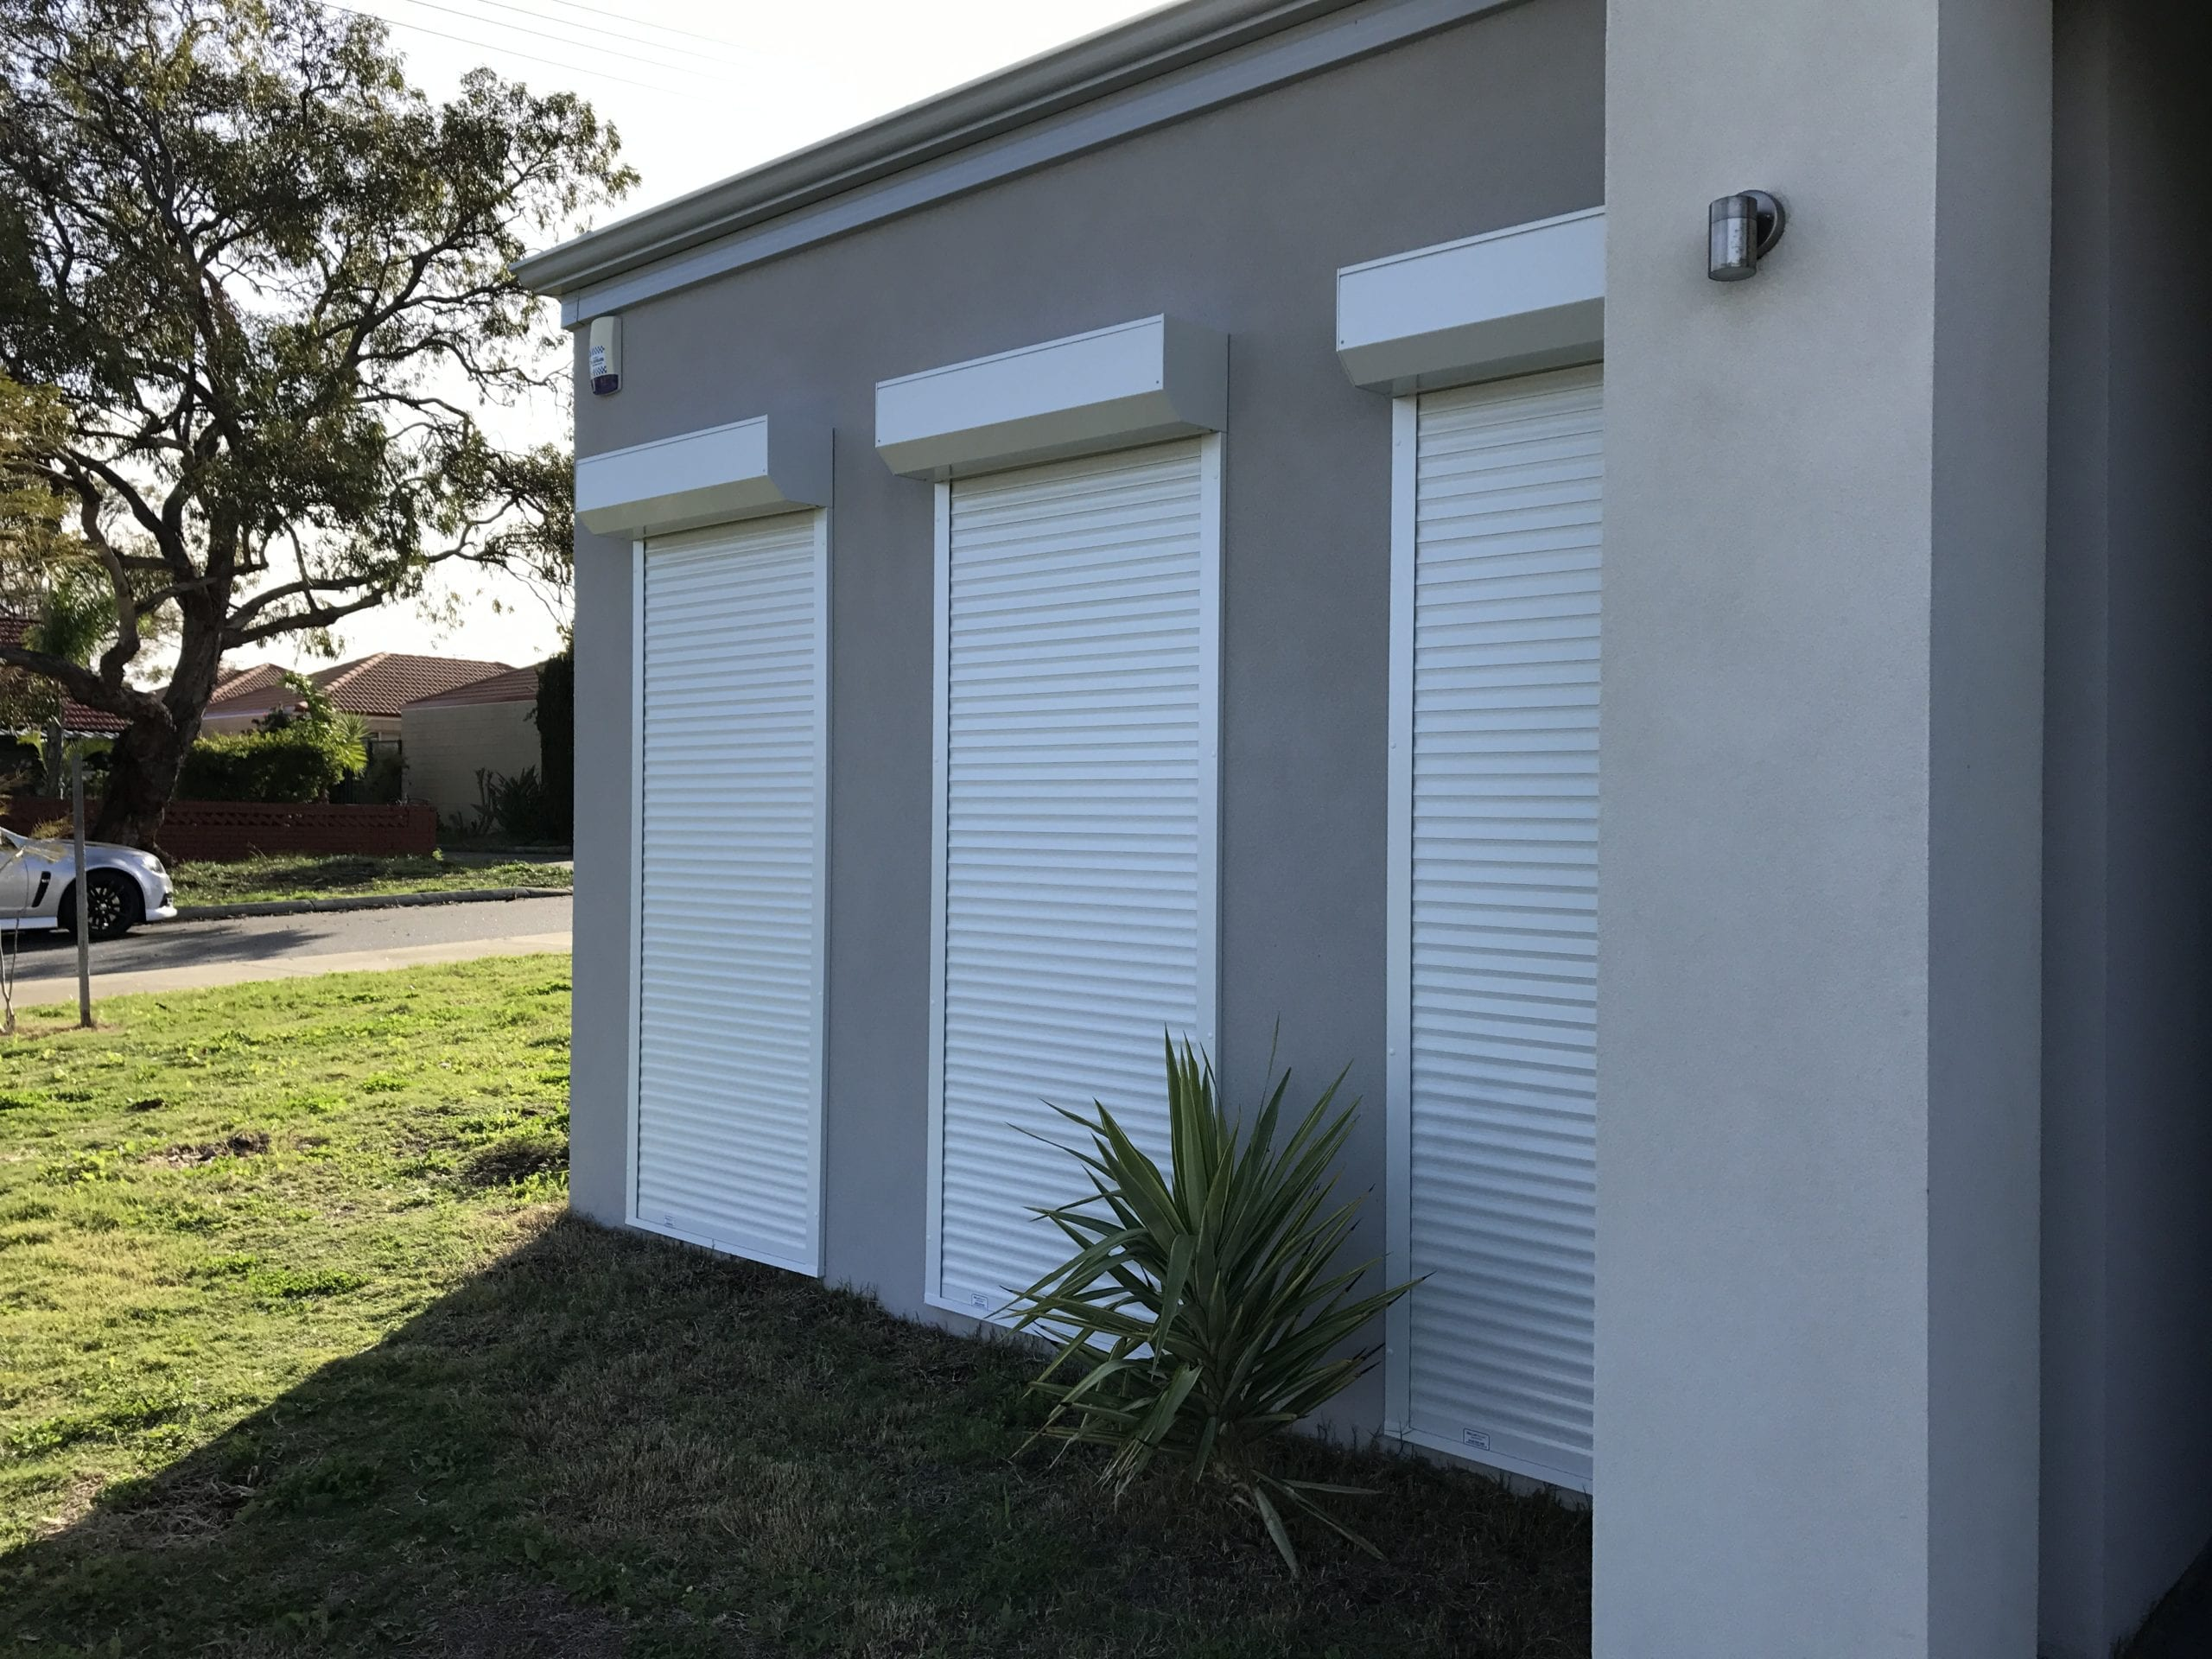 Are Roller Shutters Worth the Money?